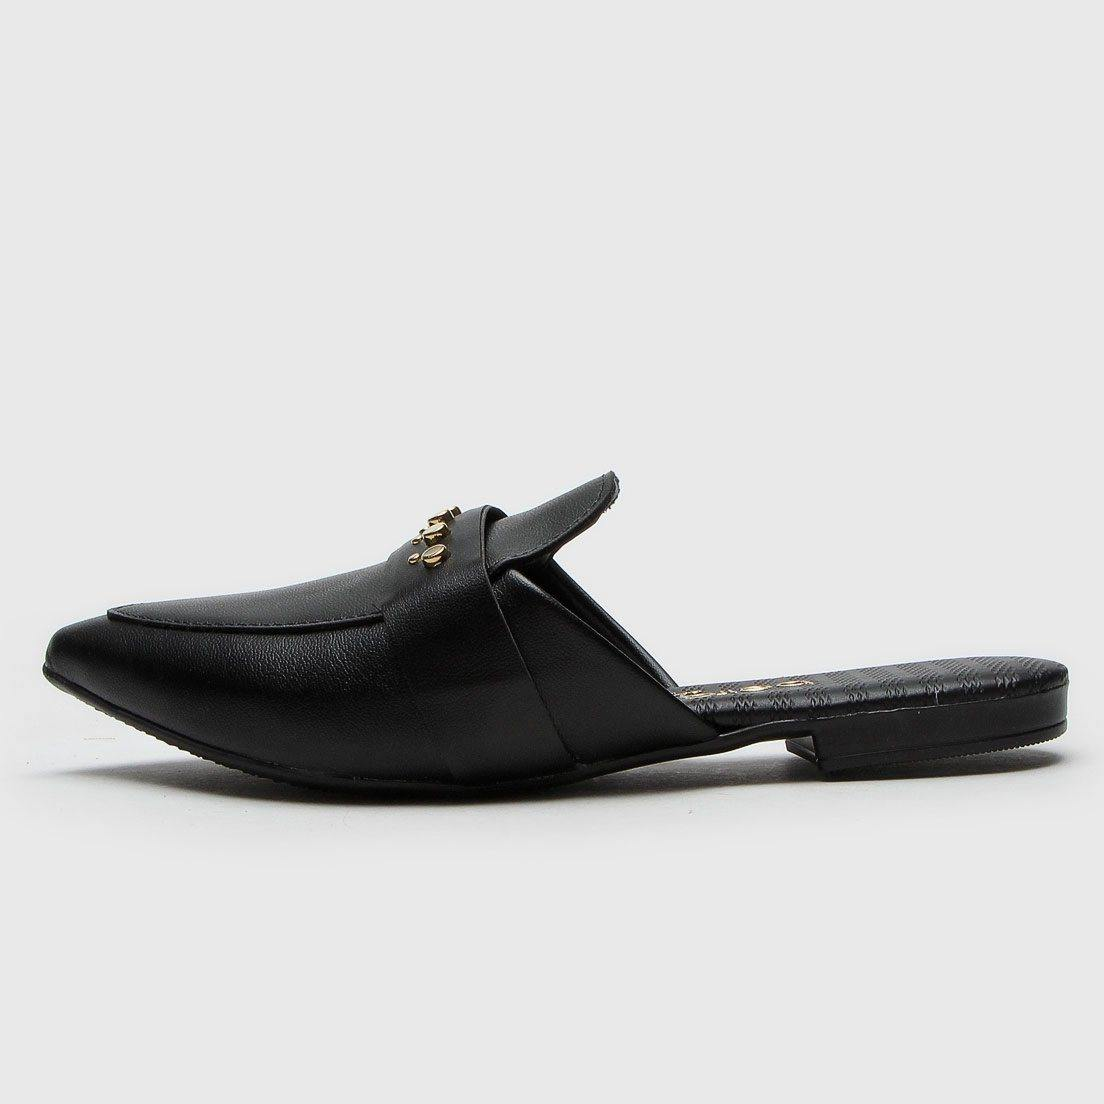 Beira Rio 4134-468 Pointy Toe Flat Mule in Black Napa